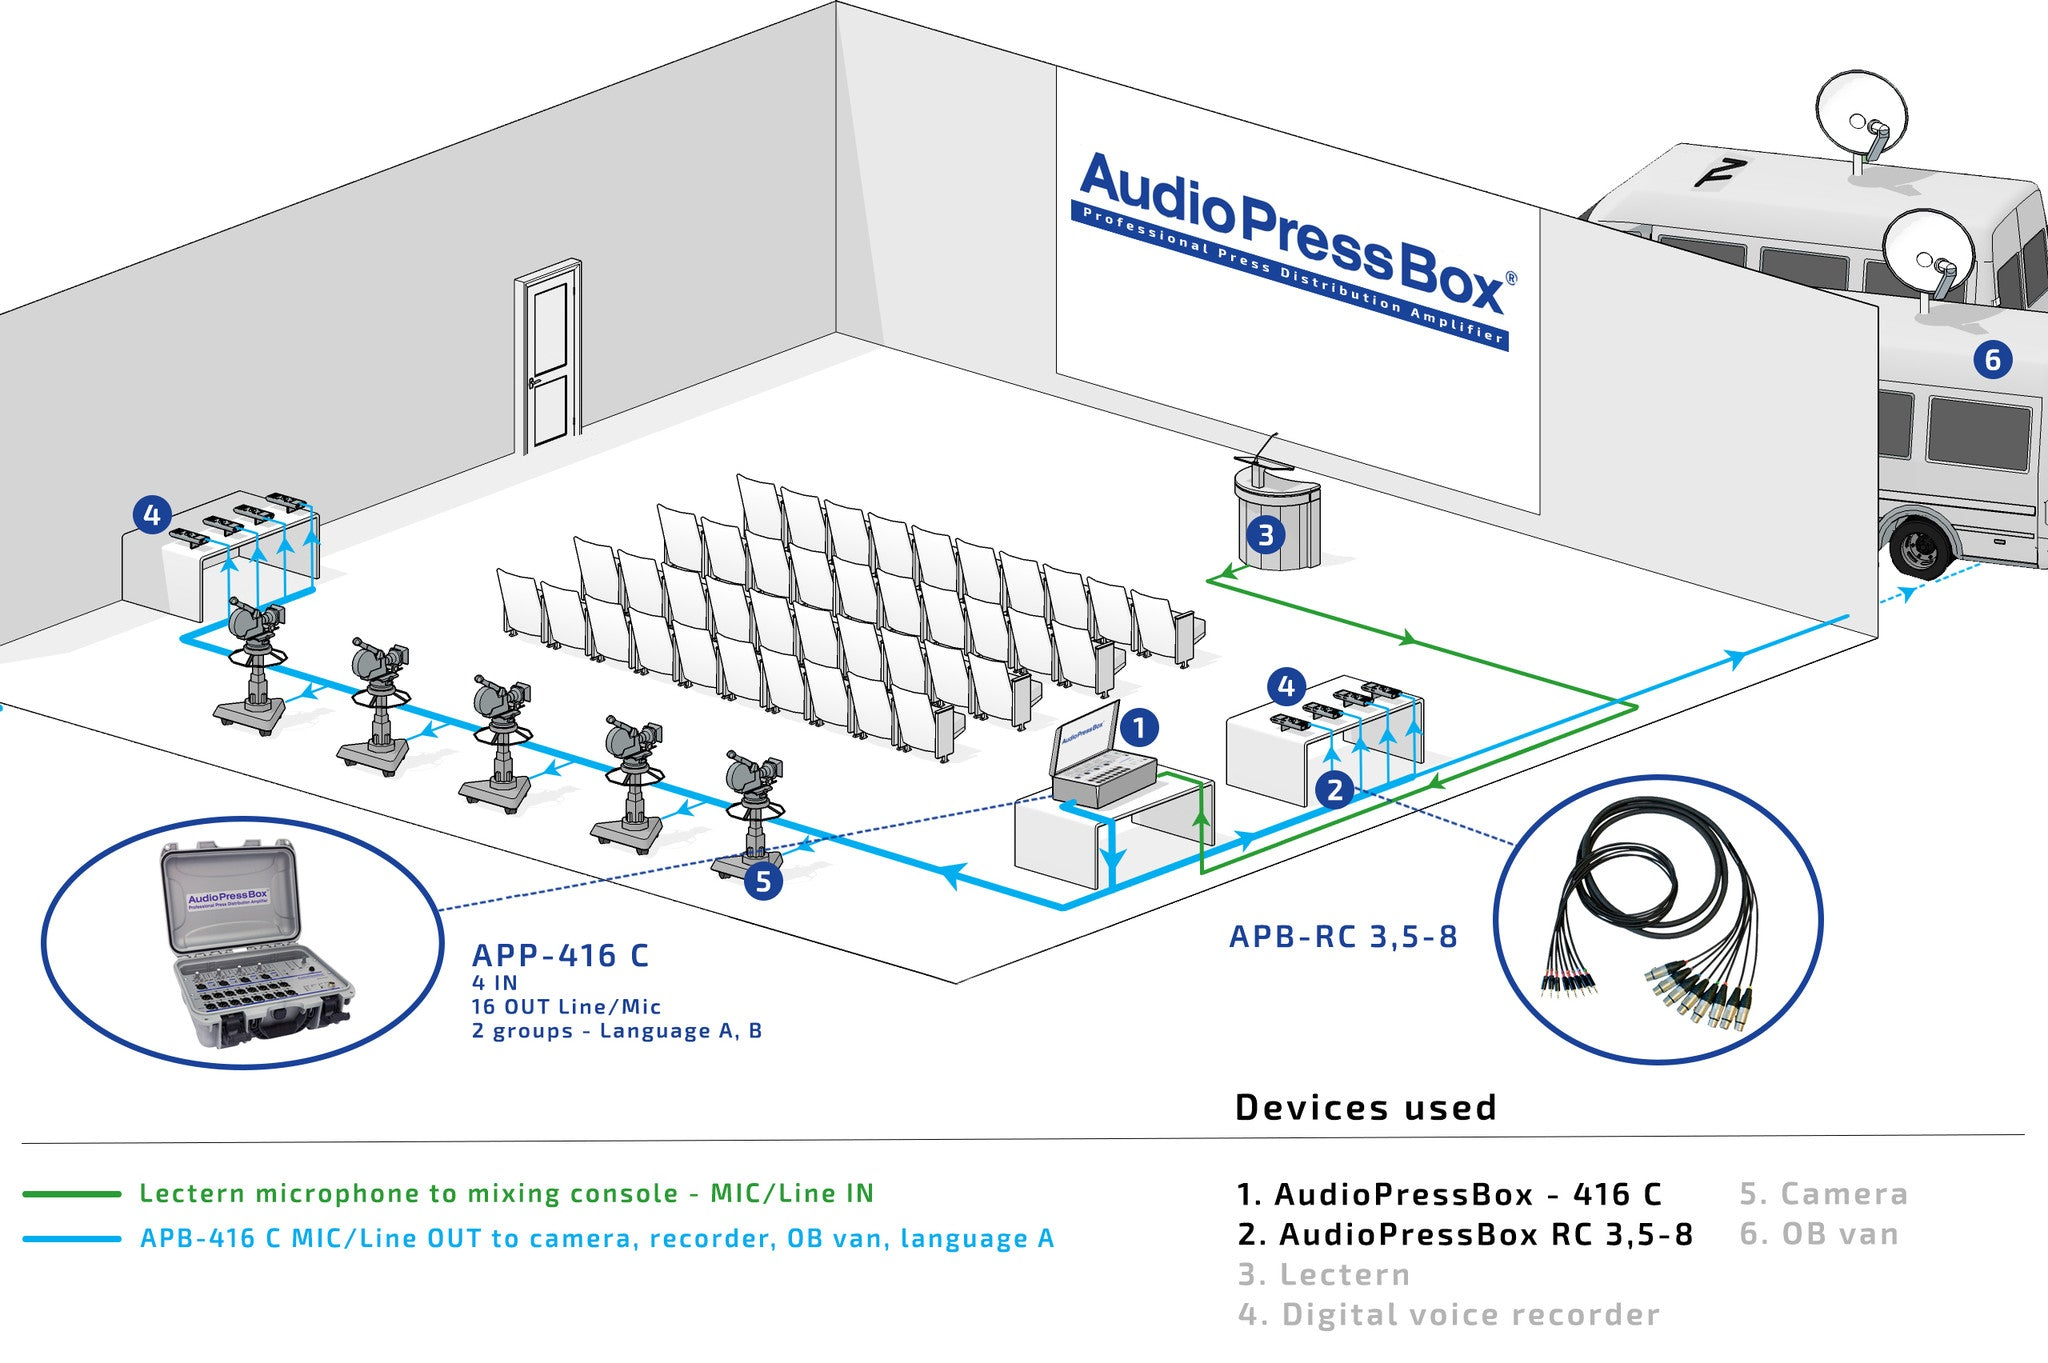 AudioPressBox, Mult Box, PressBox, Mult Box, Press Patch Box, Pressesplitter, APB-416 C